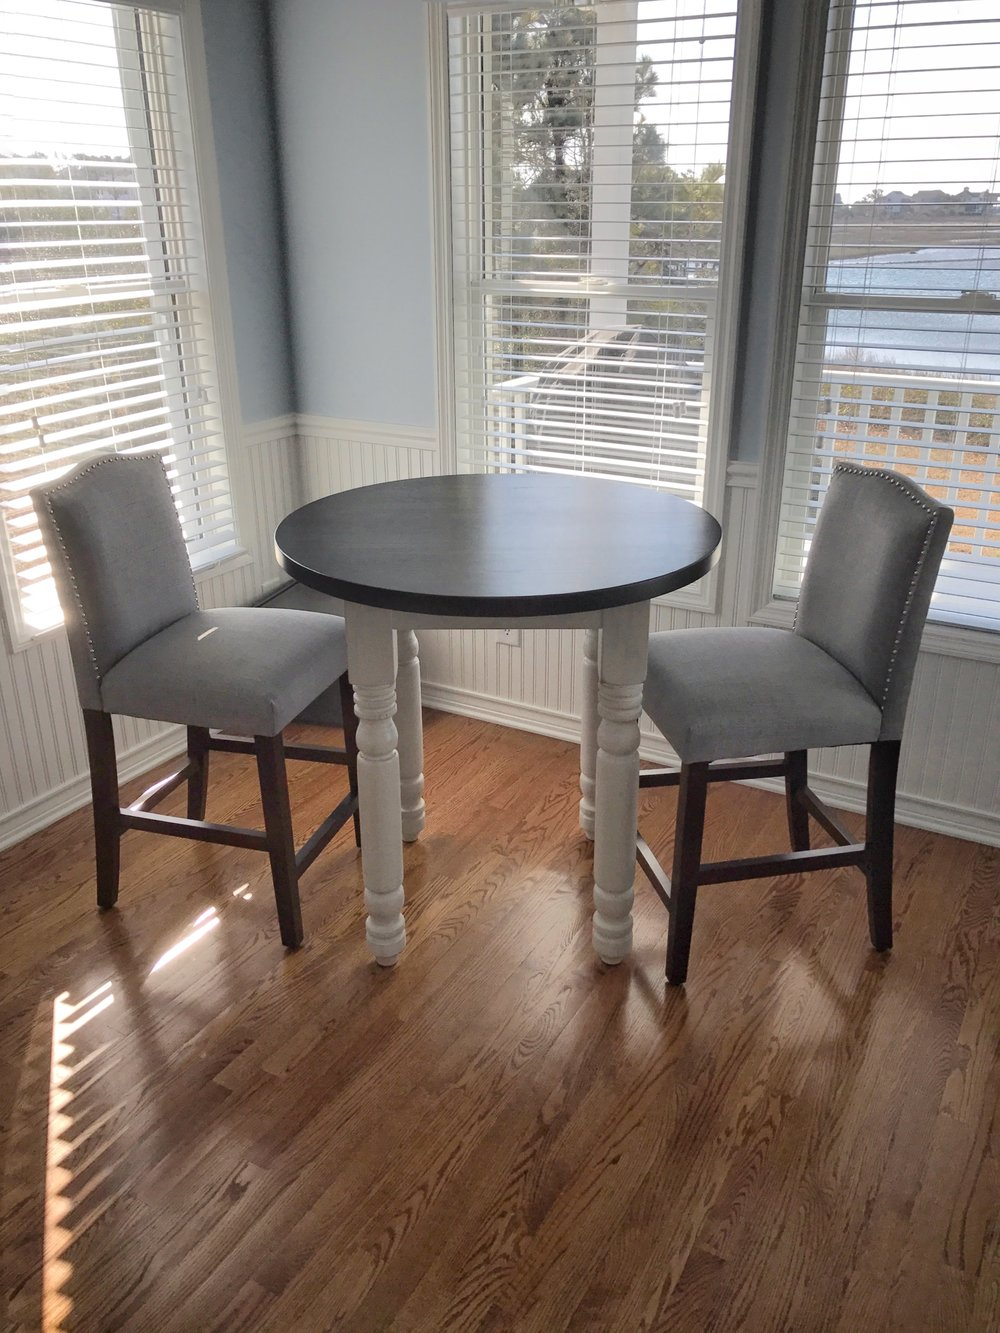 Custom round Grandma's Kitchen Table with top in Kettle and legs in Old White